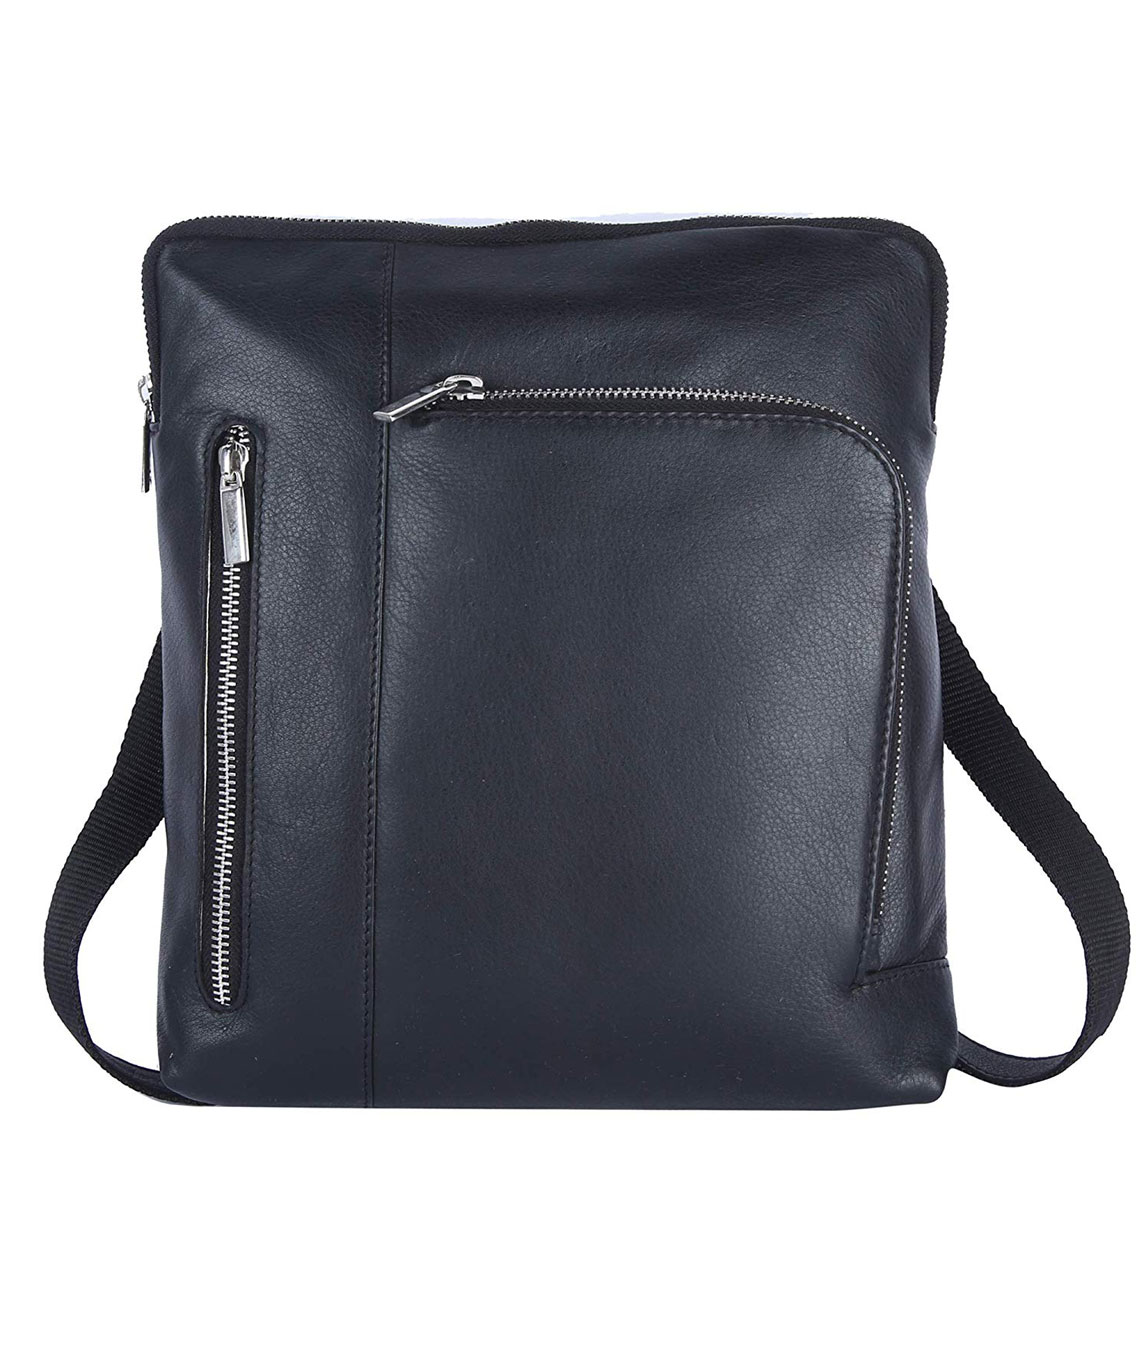 AM LEATHER Leather Black Office Bag